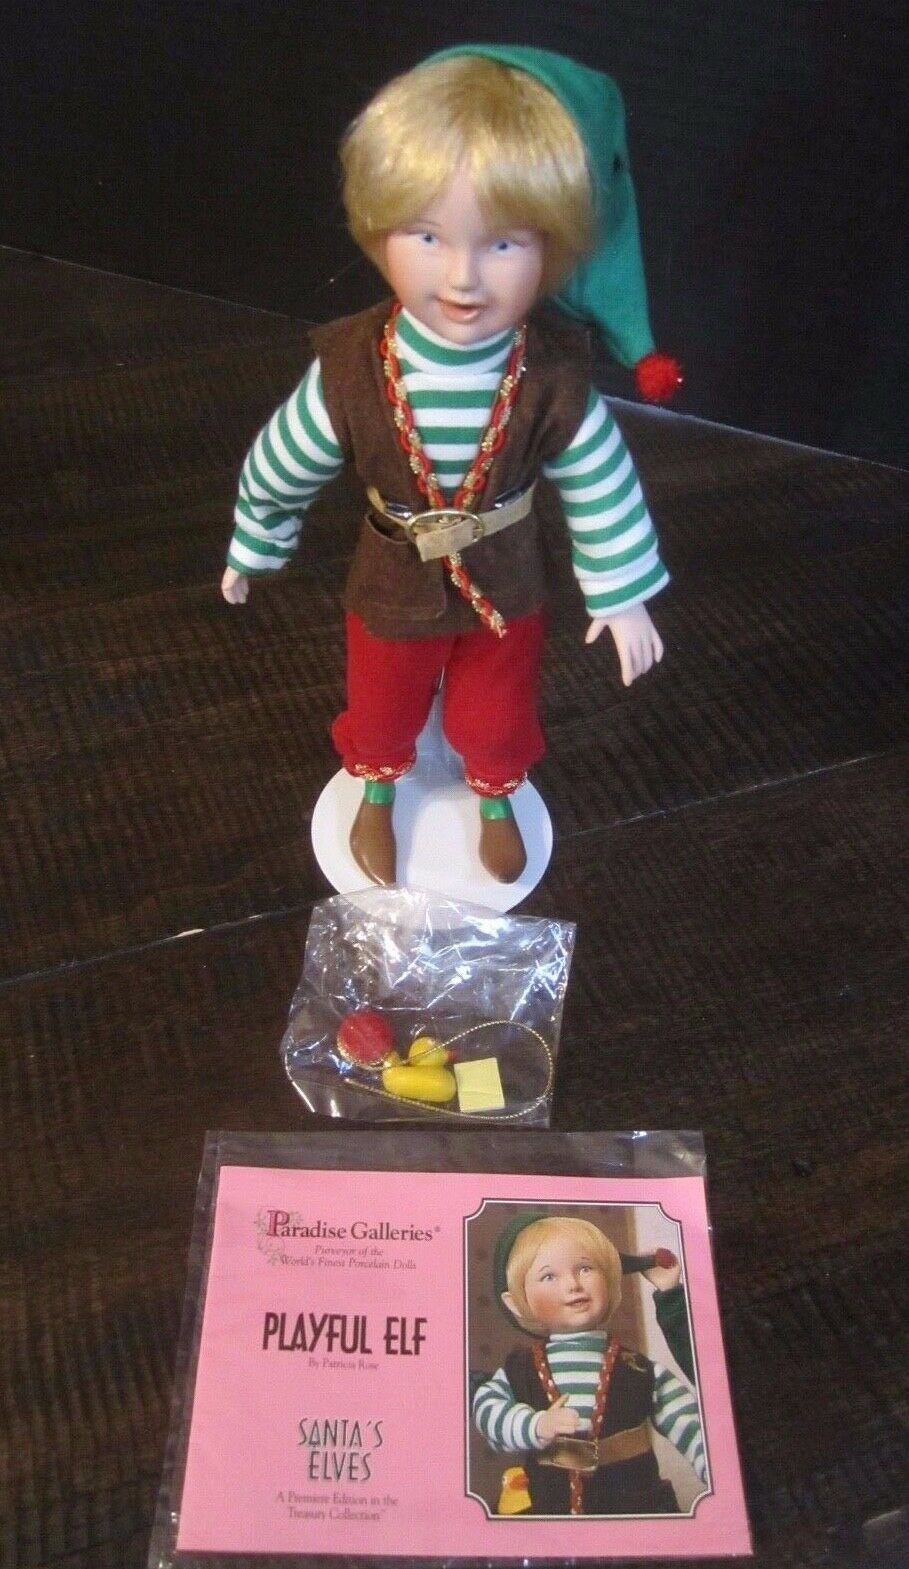 Paradise Galleries Playful Elf Santas elves and 5 similar items